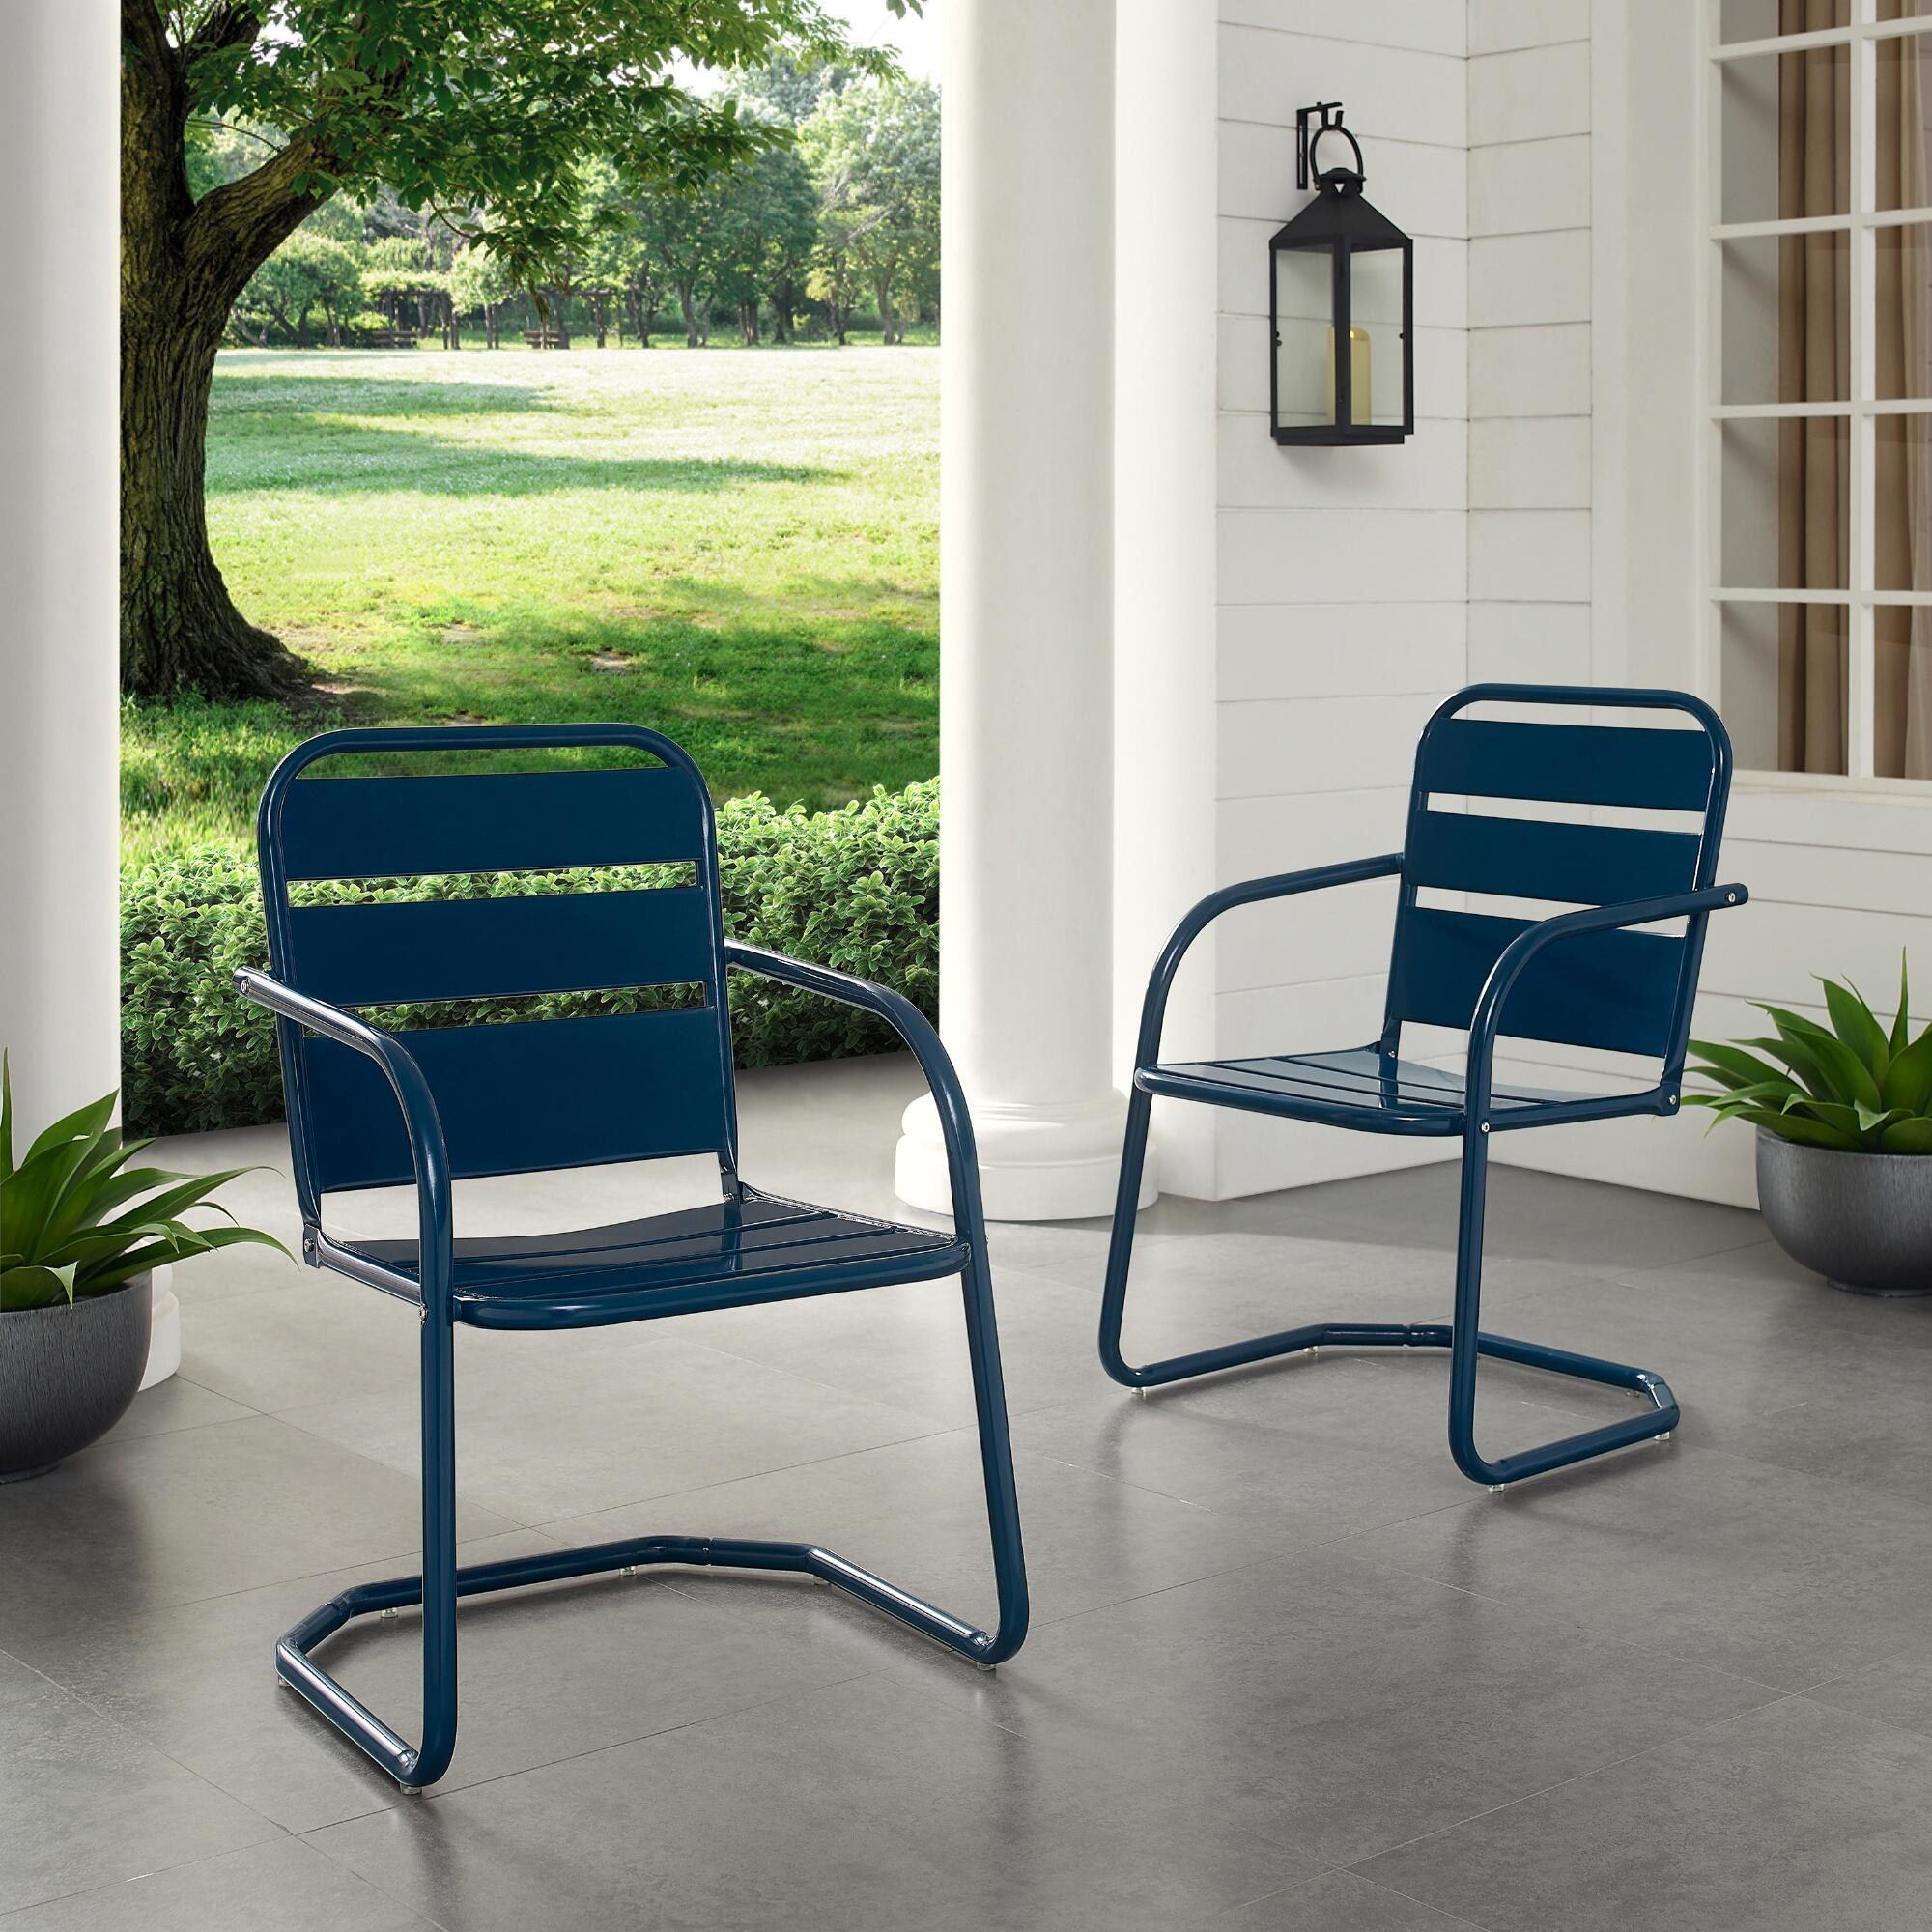 two navy metal chairs